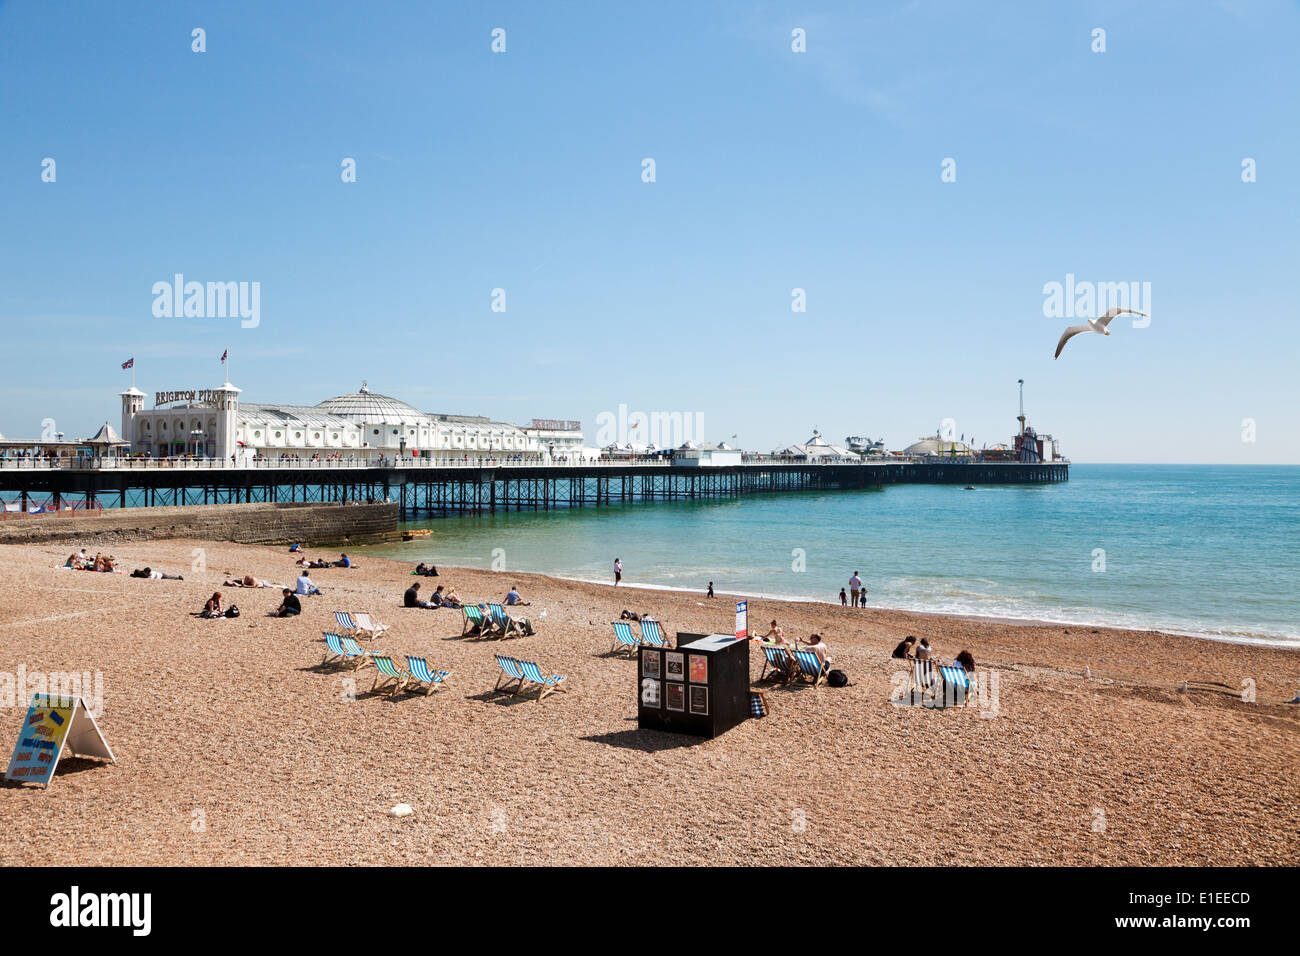 People relaxing at the beach next to the Pier of Brighton, East Sussex, UK - Stock Image